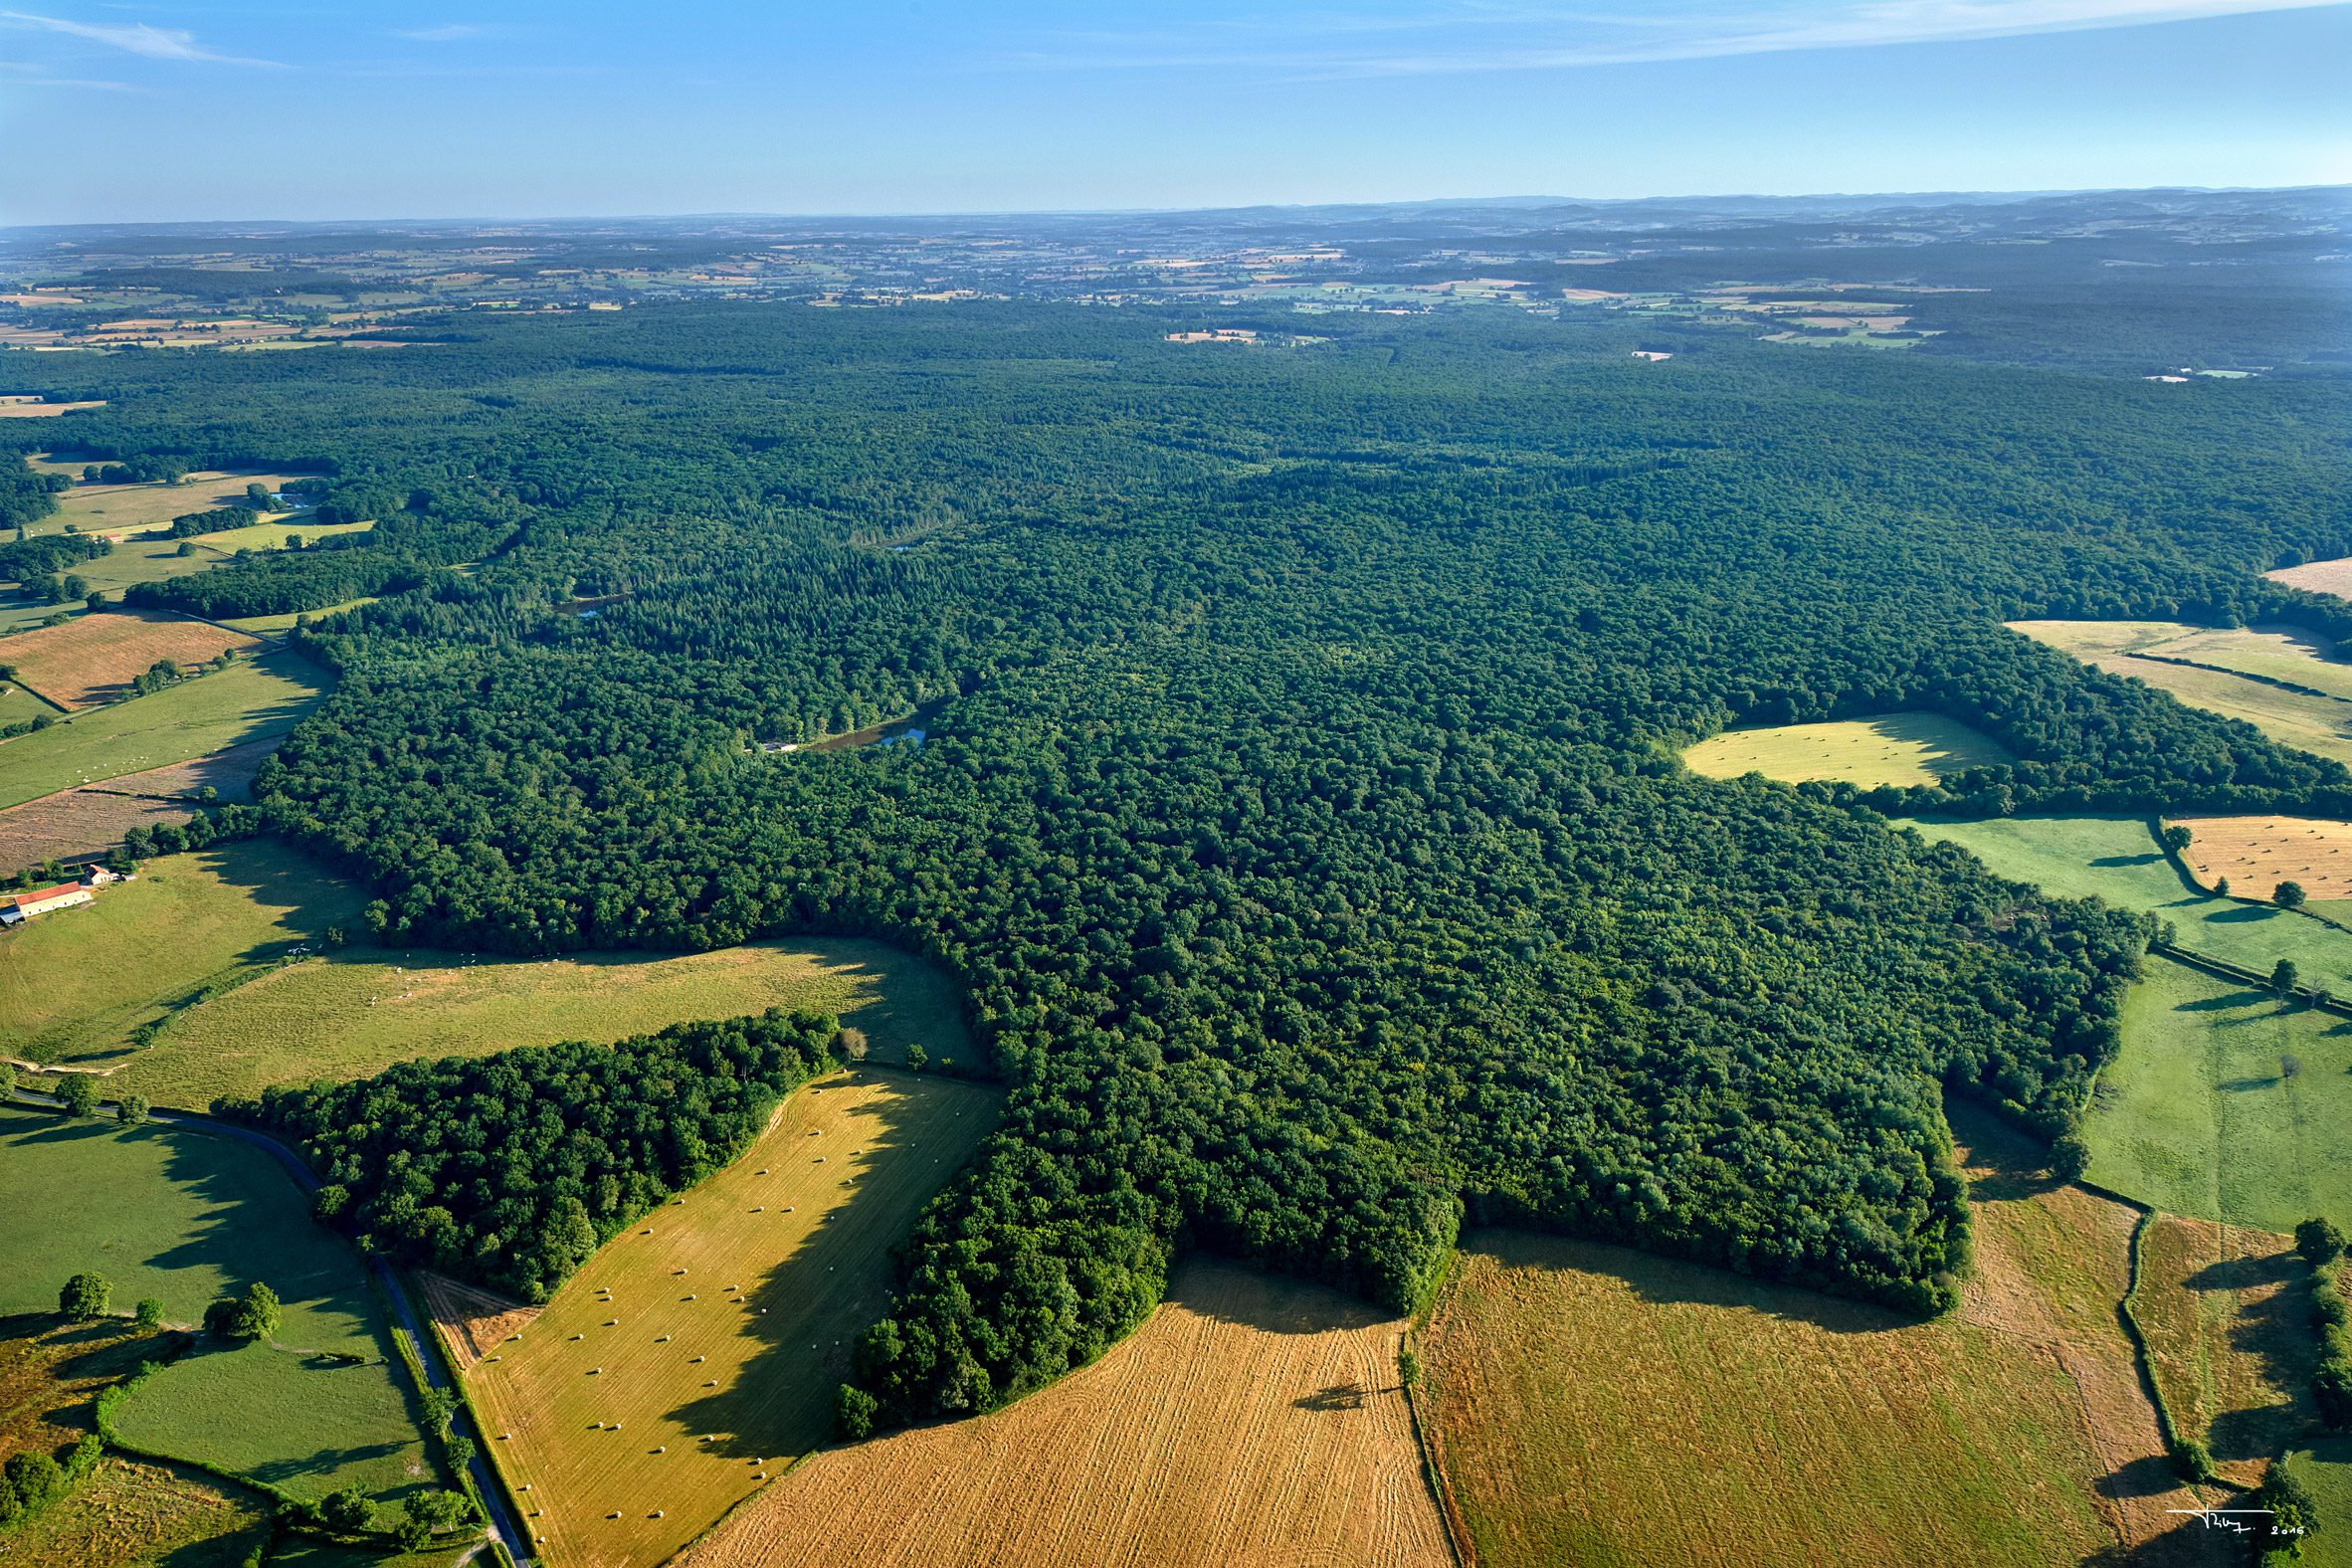 A bird's eye view of a forest in France